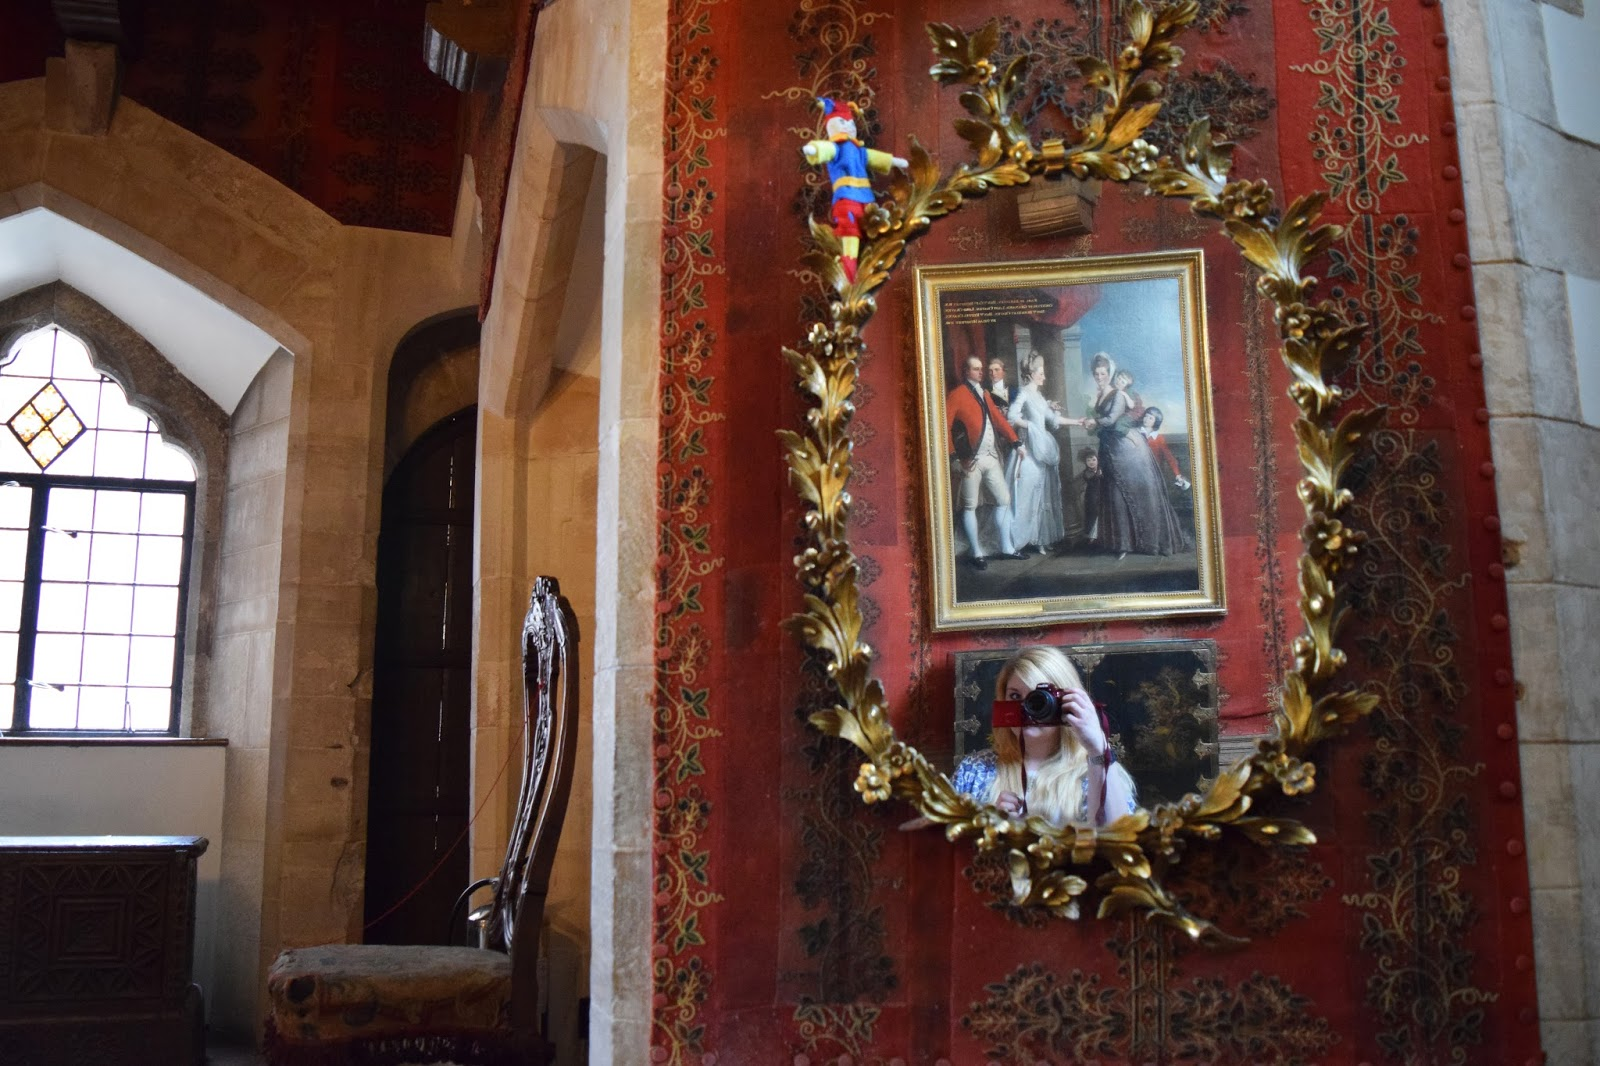 inside a hallway in Berkeley Castle. a gold ornate mirror can be seen and inside this myself taking a selfie. to the side of the mirror is an old chair below a window